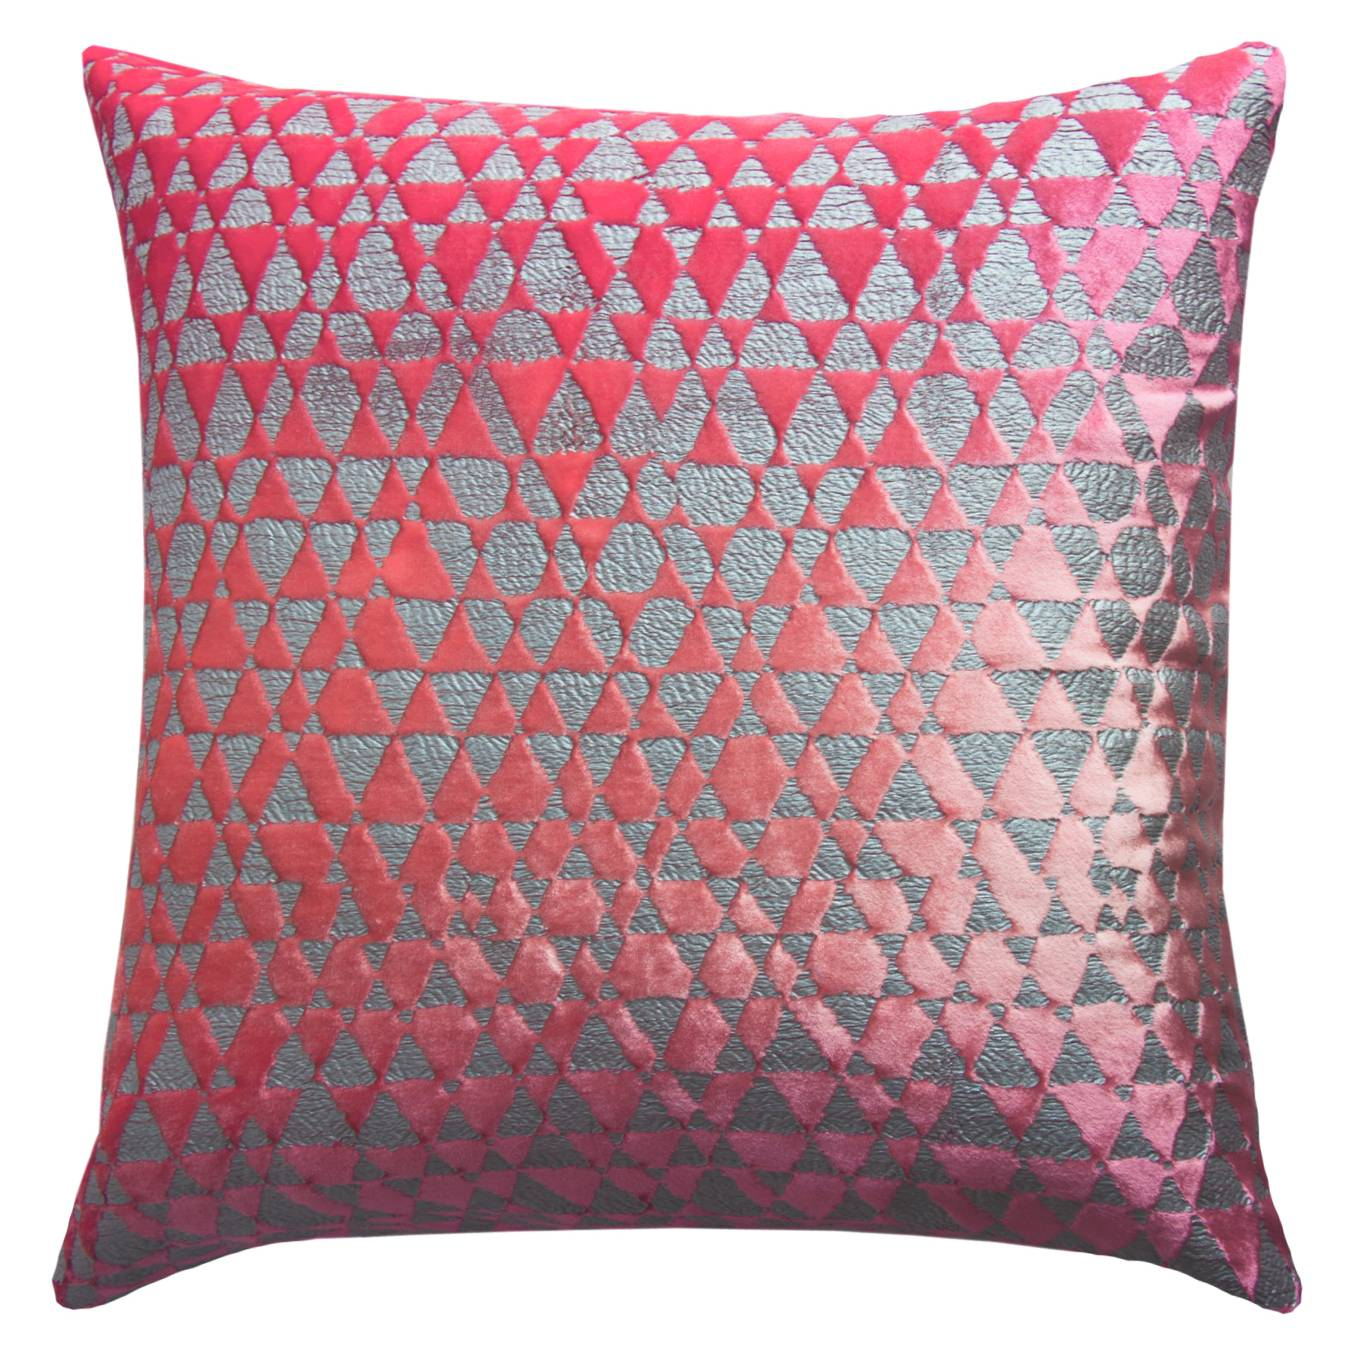 Discontinued Kevin OBrien Studio Metallic Triangles Velvet Decorative Pillow